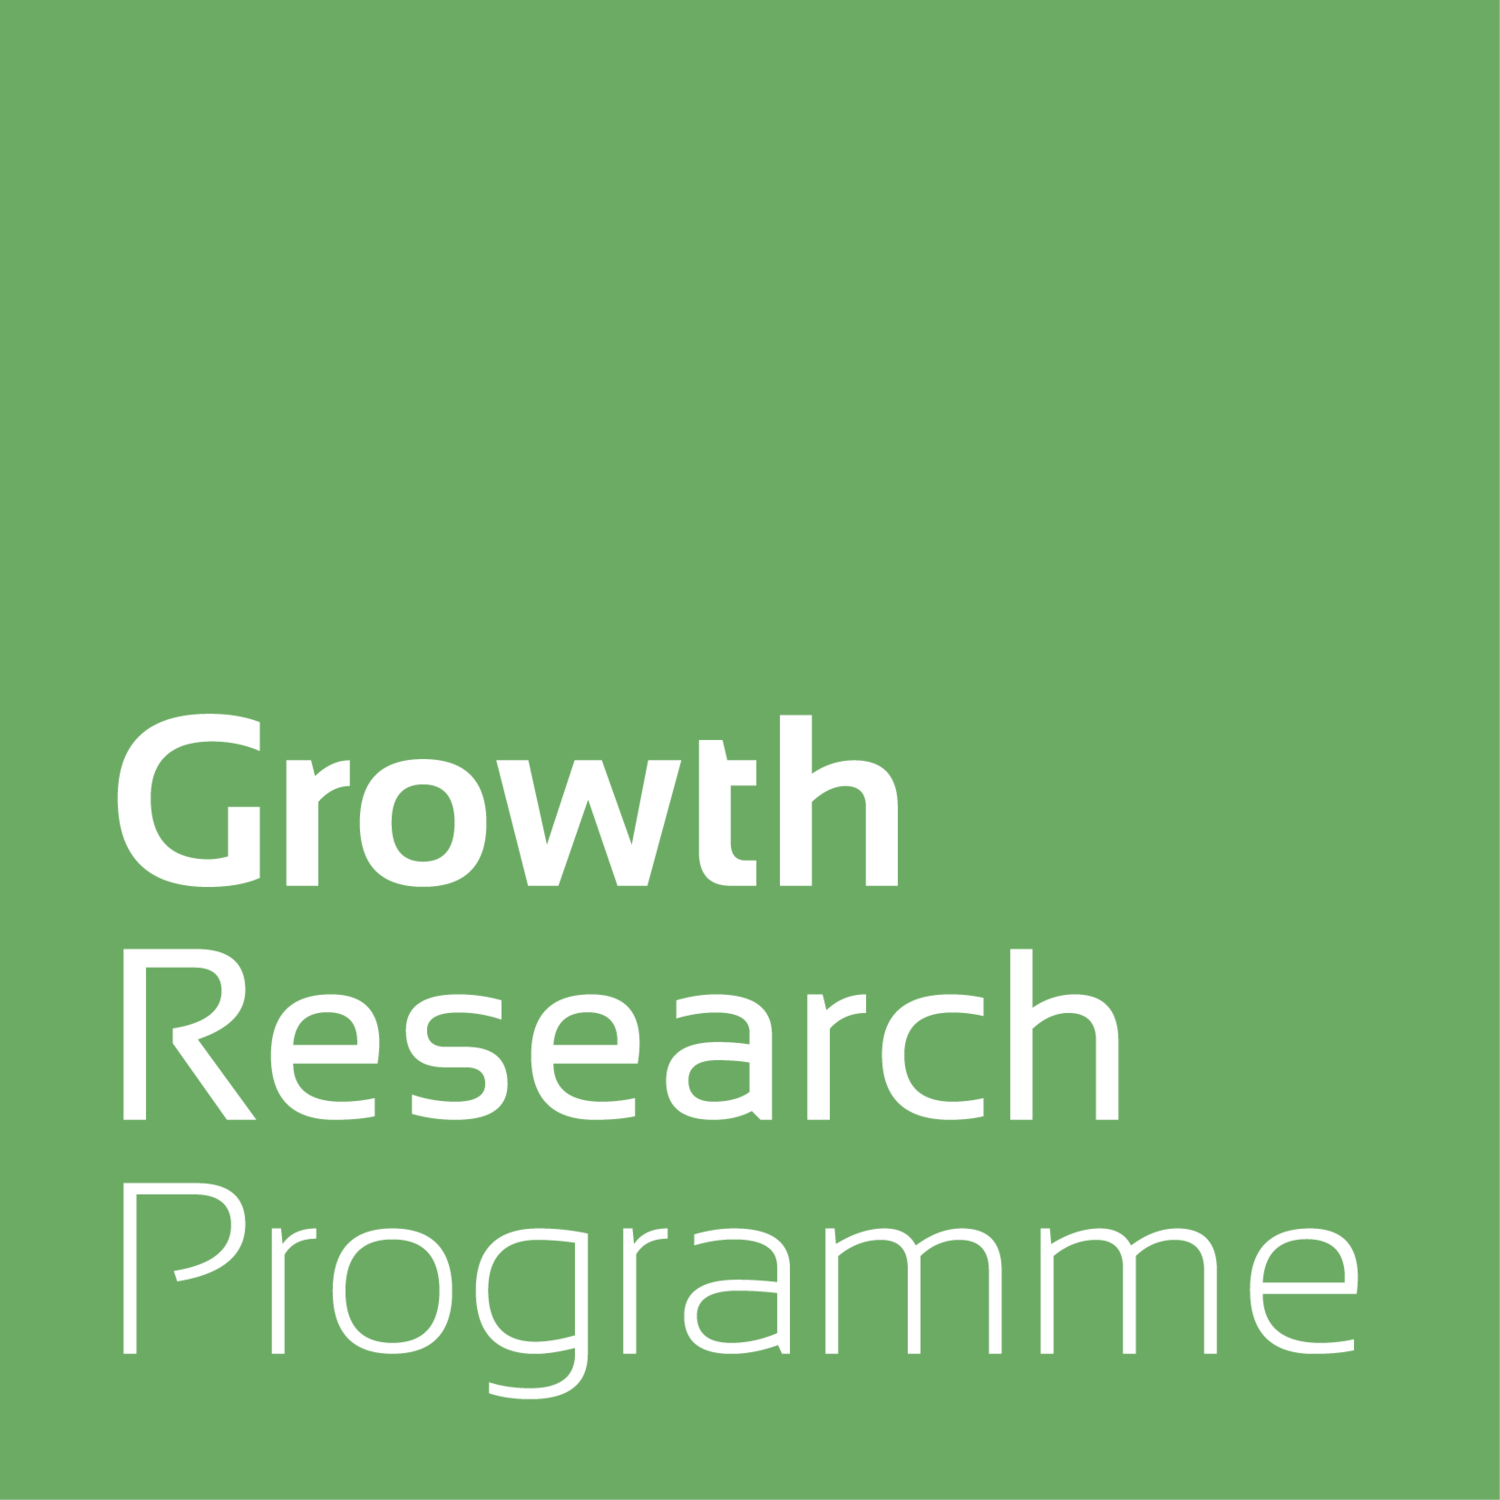 new policy essays africa a maturing relationship dfid dfid esrc growth research programme